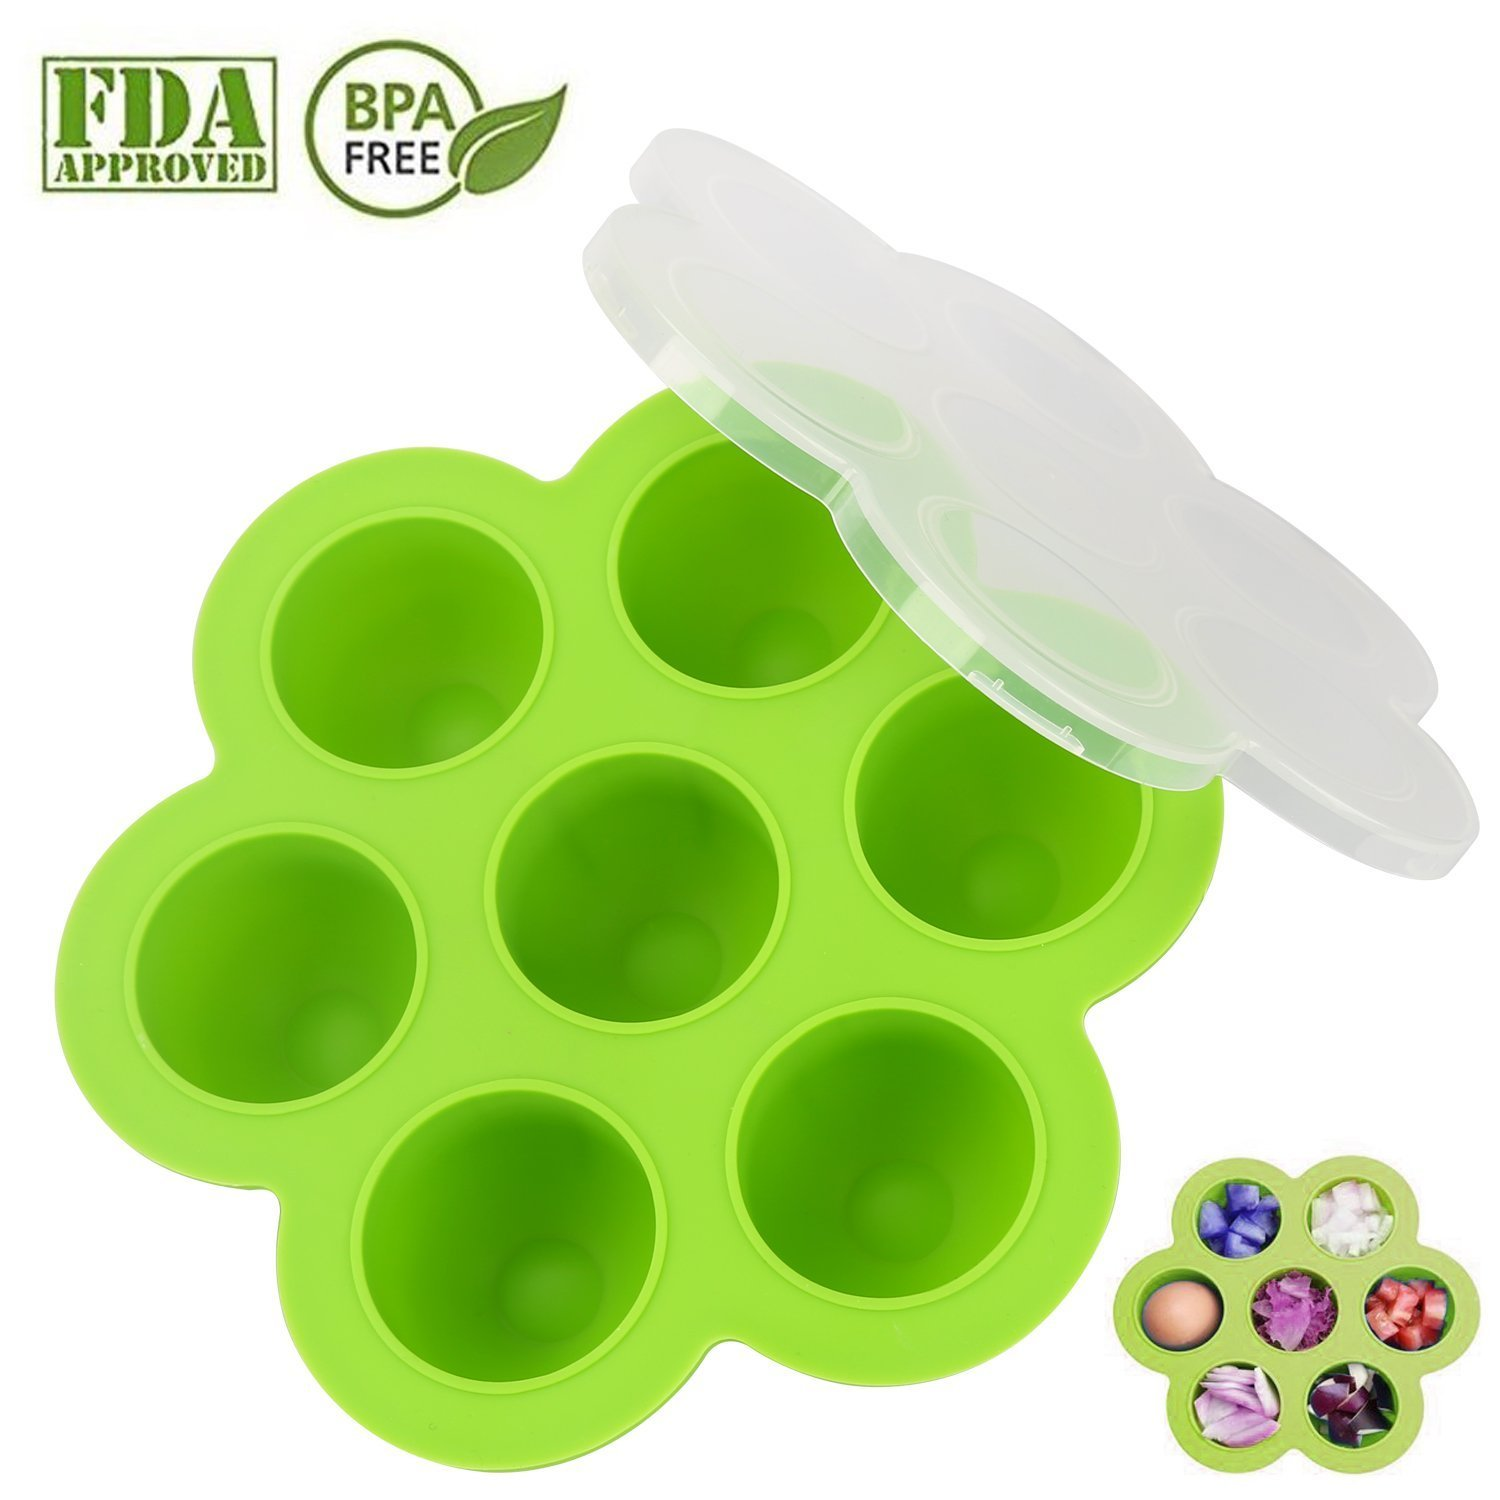 Becozier Premium Silicone Egg Bites Molds for Instant Pot Accessory for 5,6,8 qt Pressure Cooker, Storage Container and Freezer Tray with Clip-on Lid - BPA Free, 100% FDA Food Grade Silicone(Green)